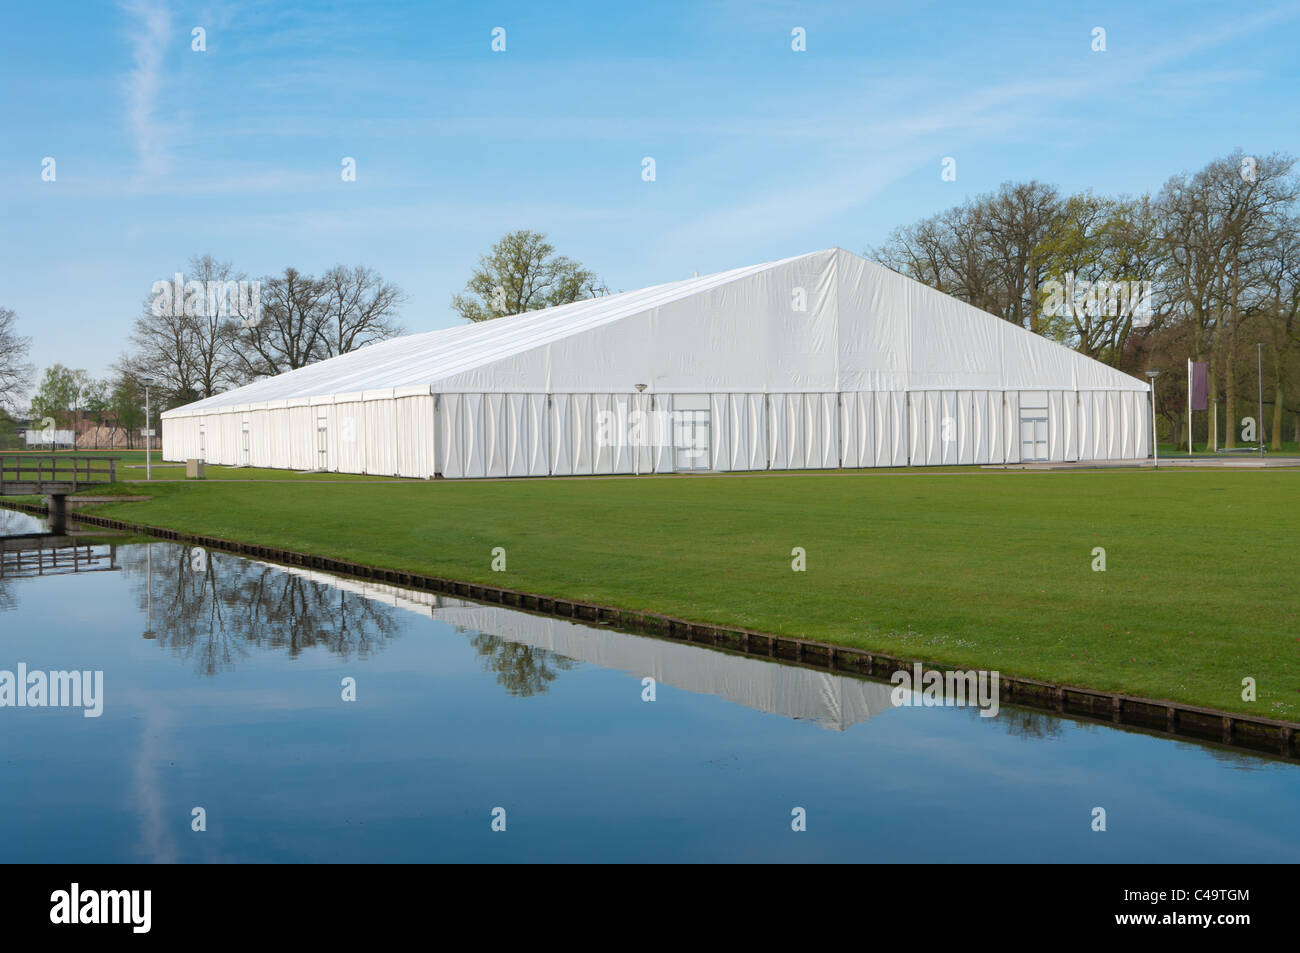 large white event tent on the c&us area of the technical university of enschede netherlands & large white event tent on the campus area of the technical ...